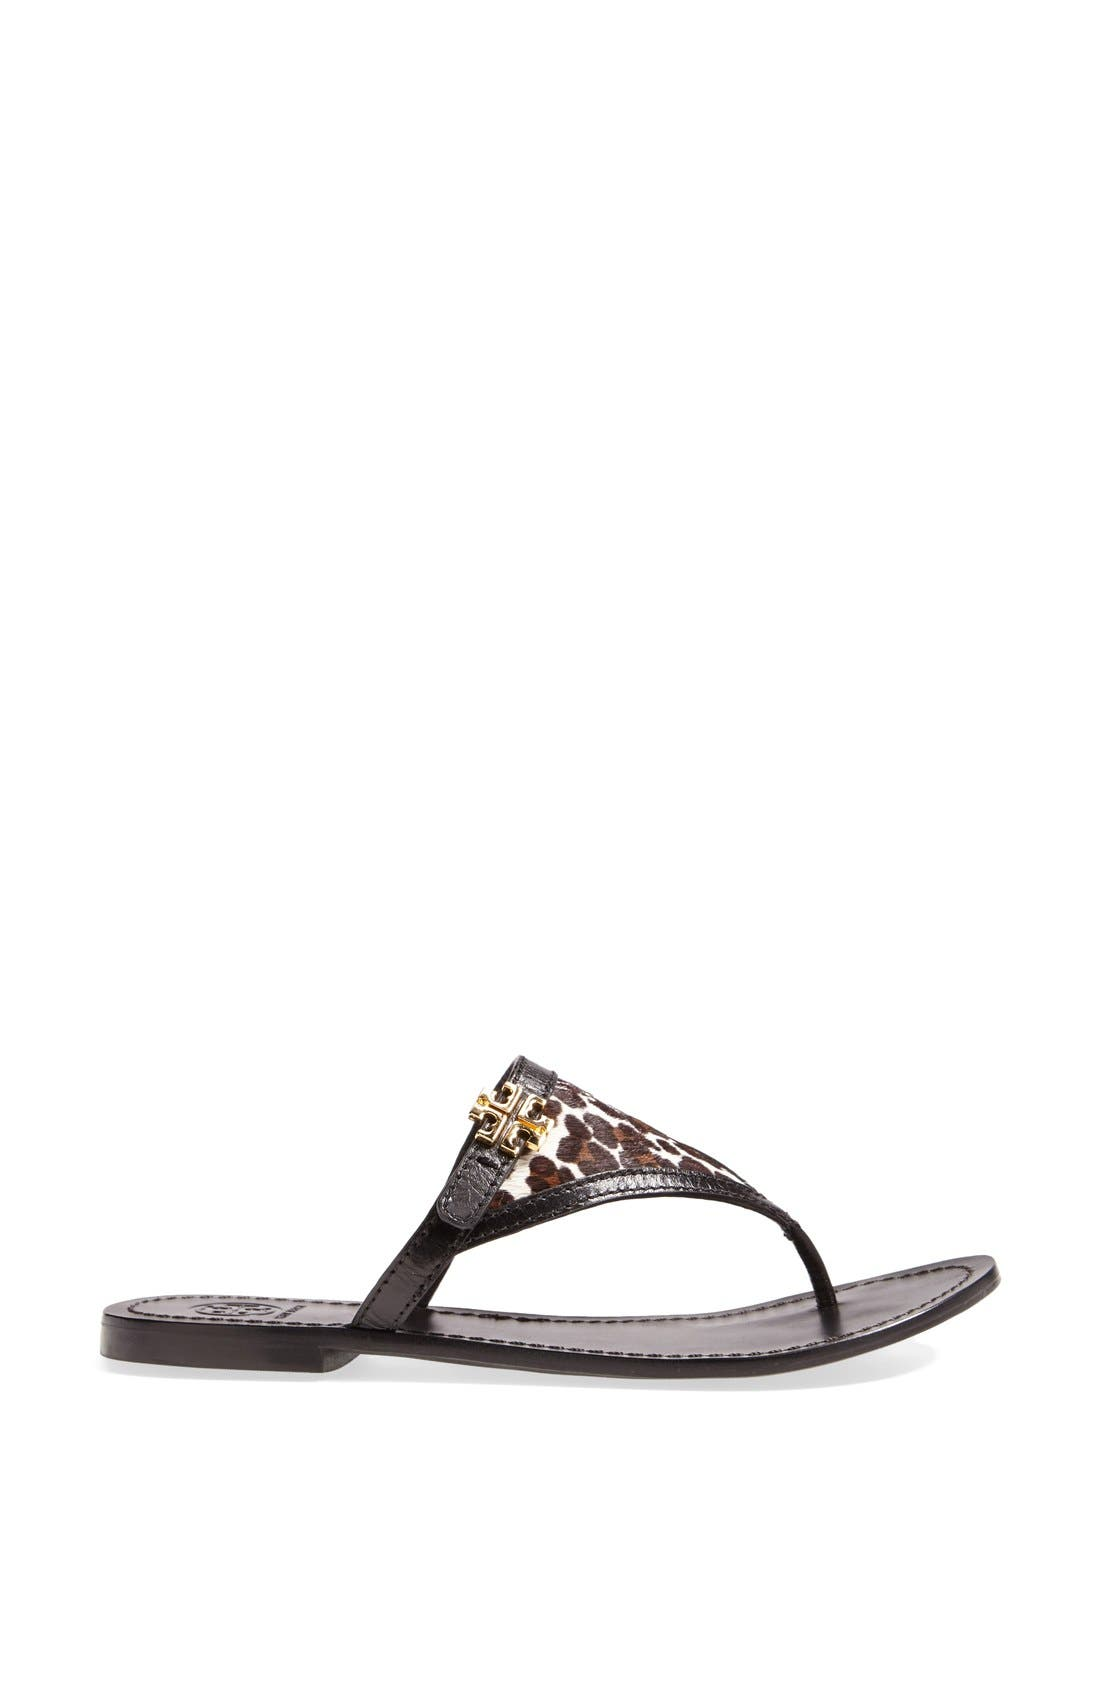 Alternate Image 3  - Tory Burch 'Eloise' Flat Thong Sandal (Nordstrom Exclusive) (Women)